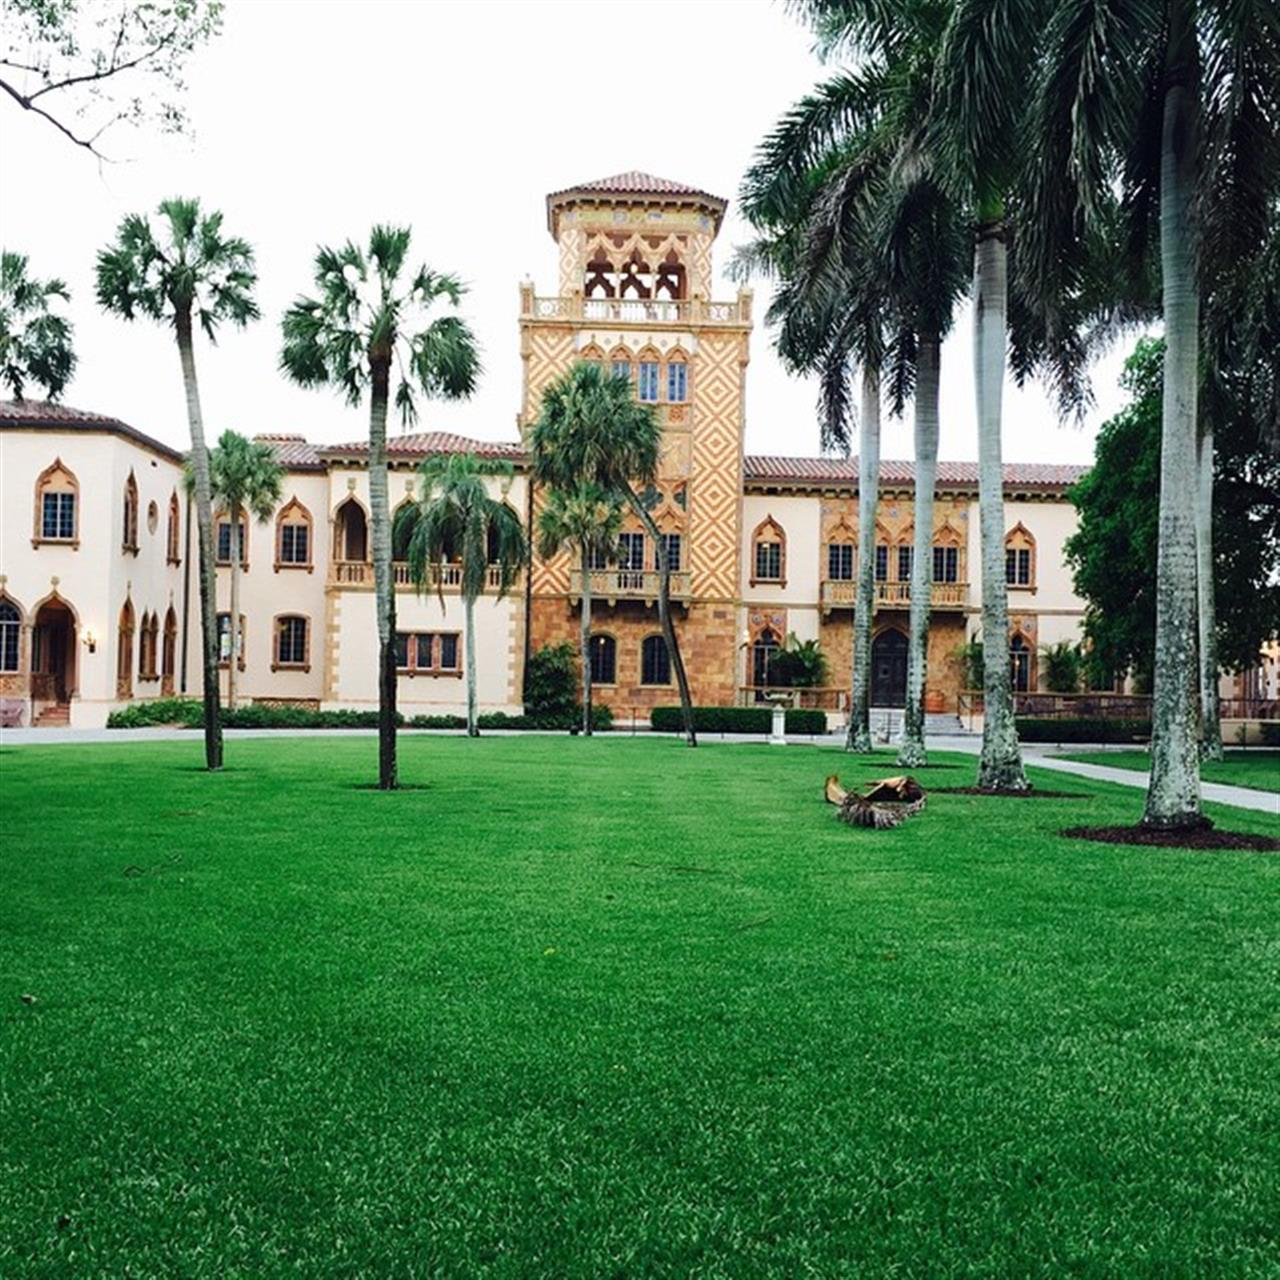 What do real estate agents do in their spare time? Look at houses! This is the John Ringling (of circus fame) home. Prior to dinner one nite we had a private reception at the John Ringling museum then toured his water front home. It looks like it came right out of Venice  Italy. #waterfront homes #sarasotarealestate #wardleyre #coolhouse